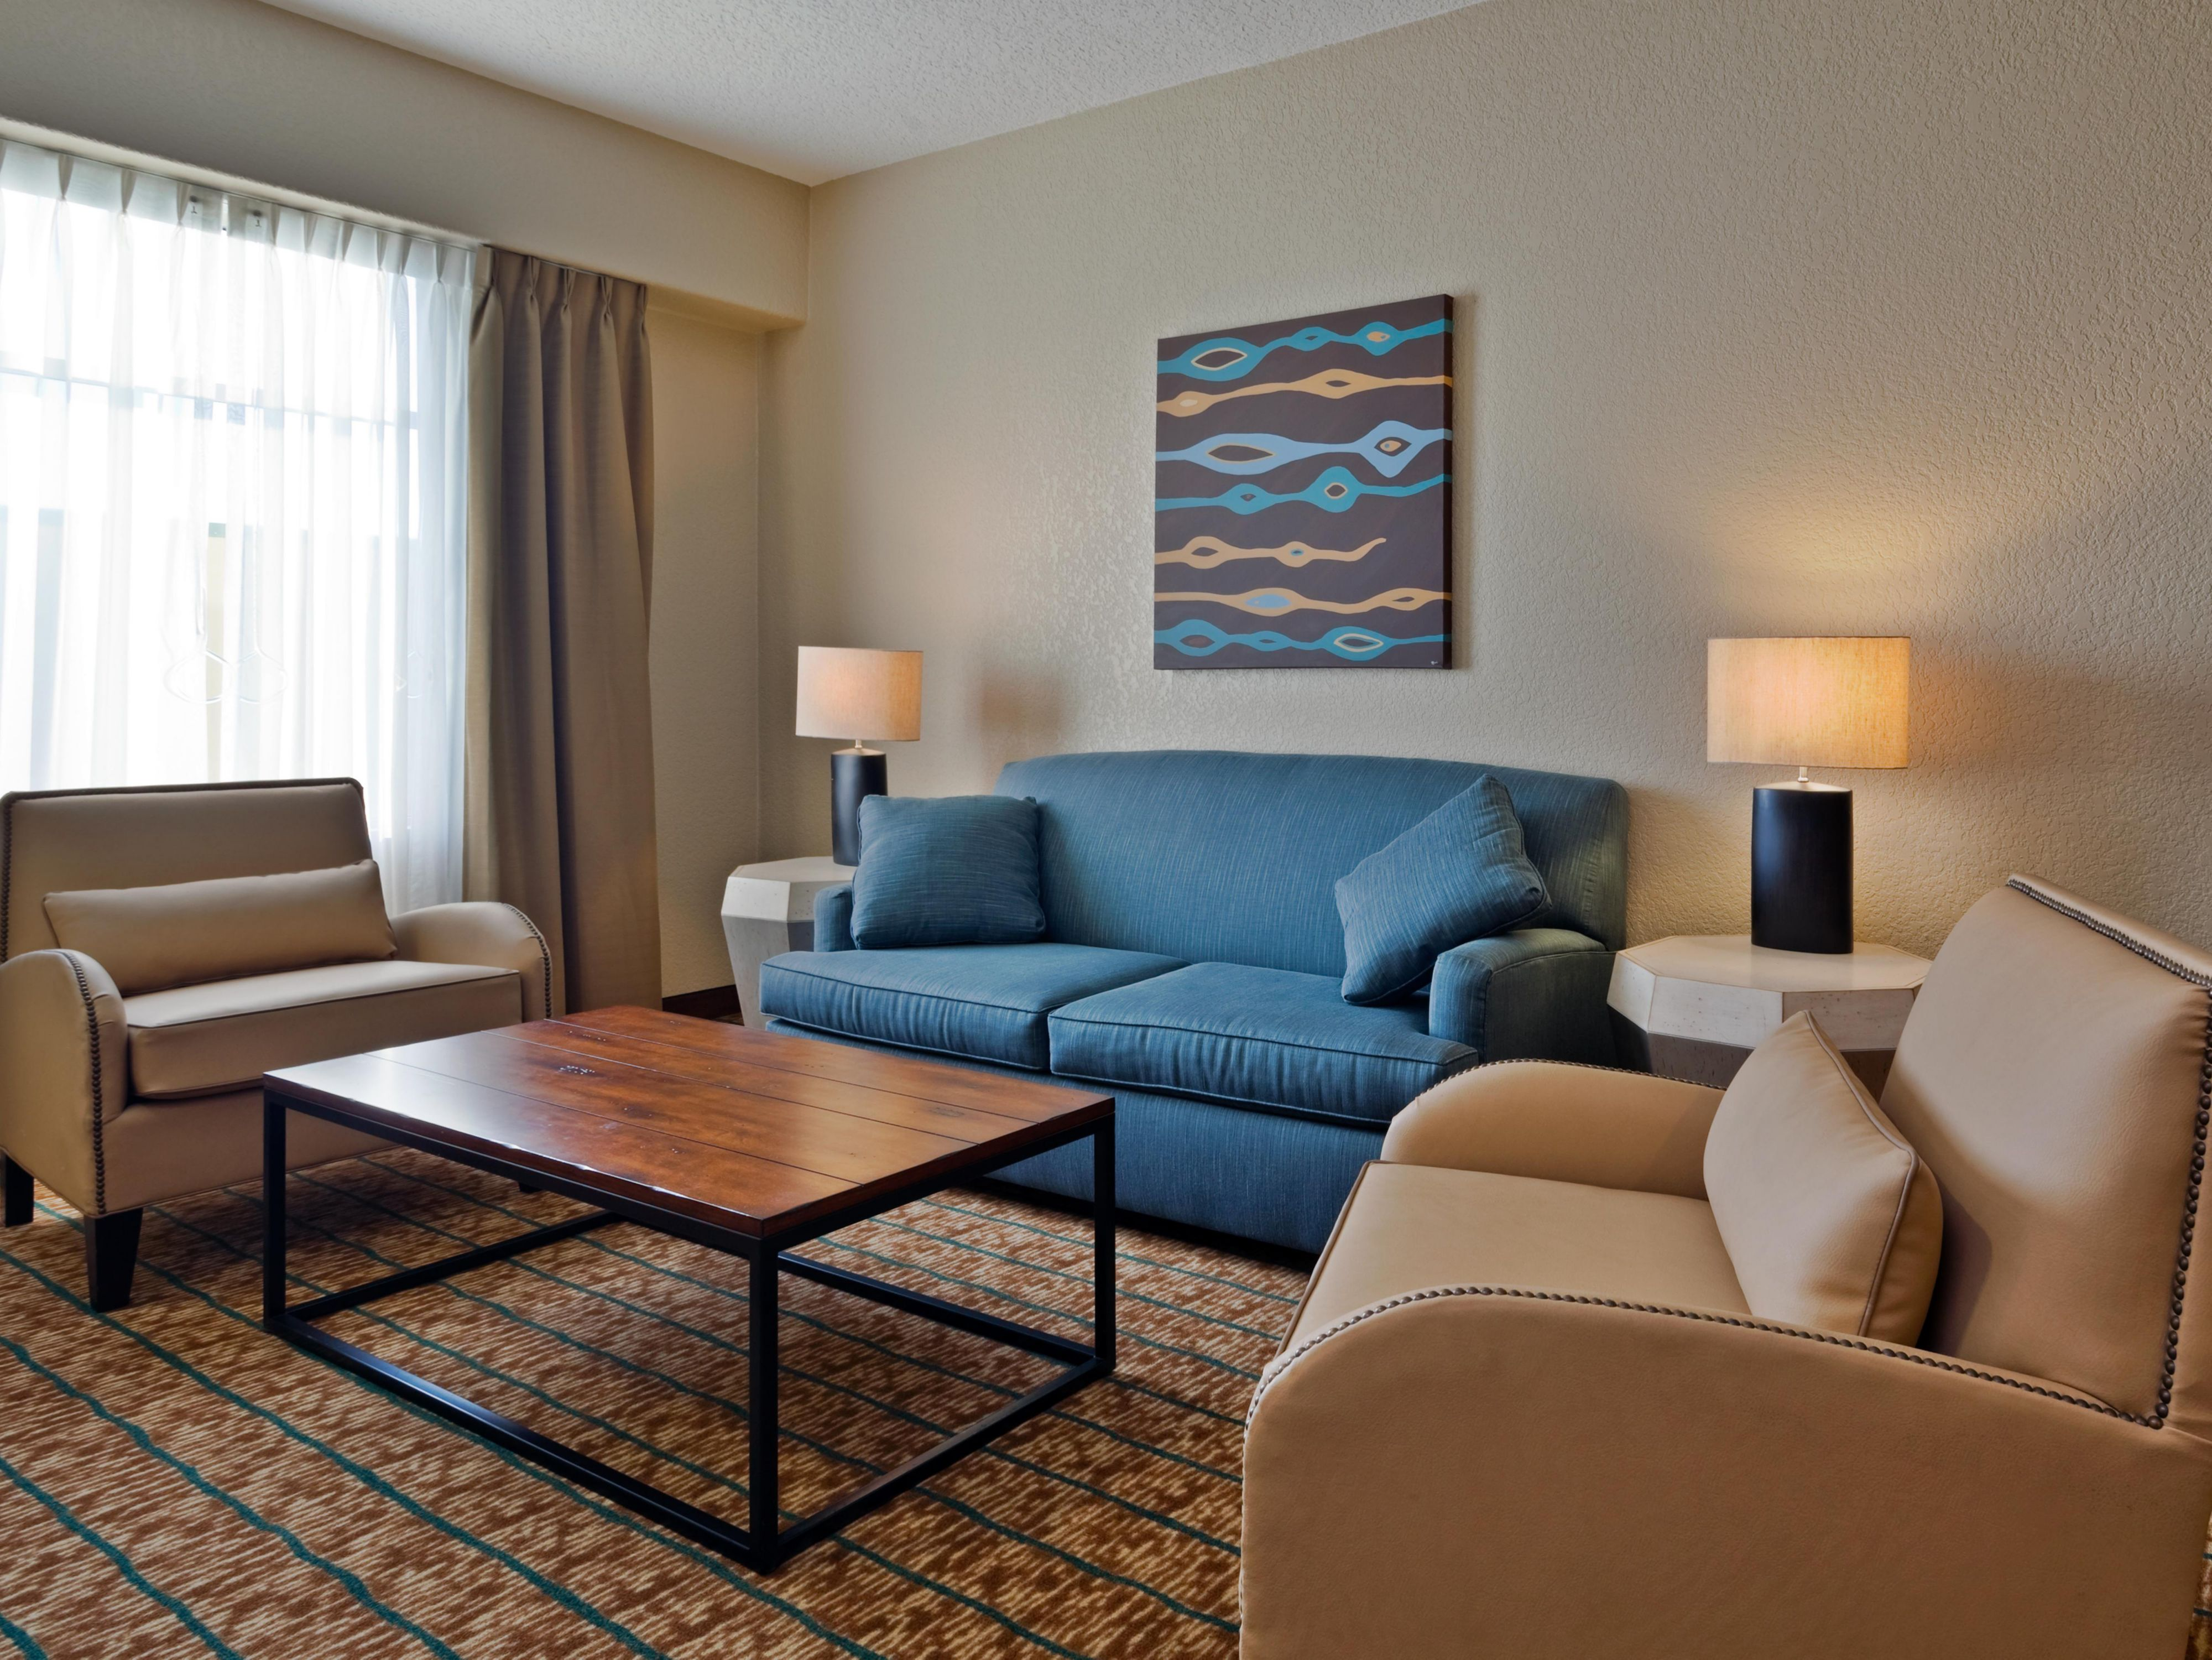 San Antonio suites offer parlors with extra space and sleeper sofa